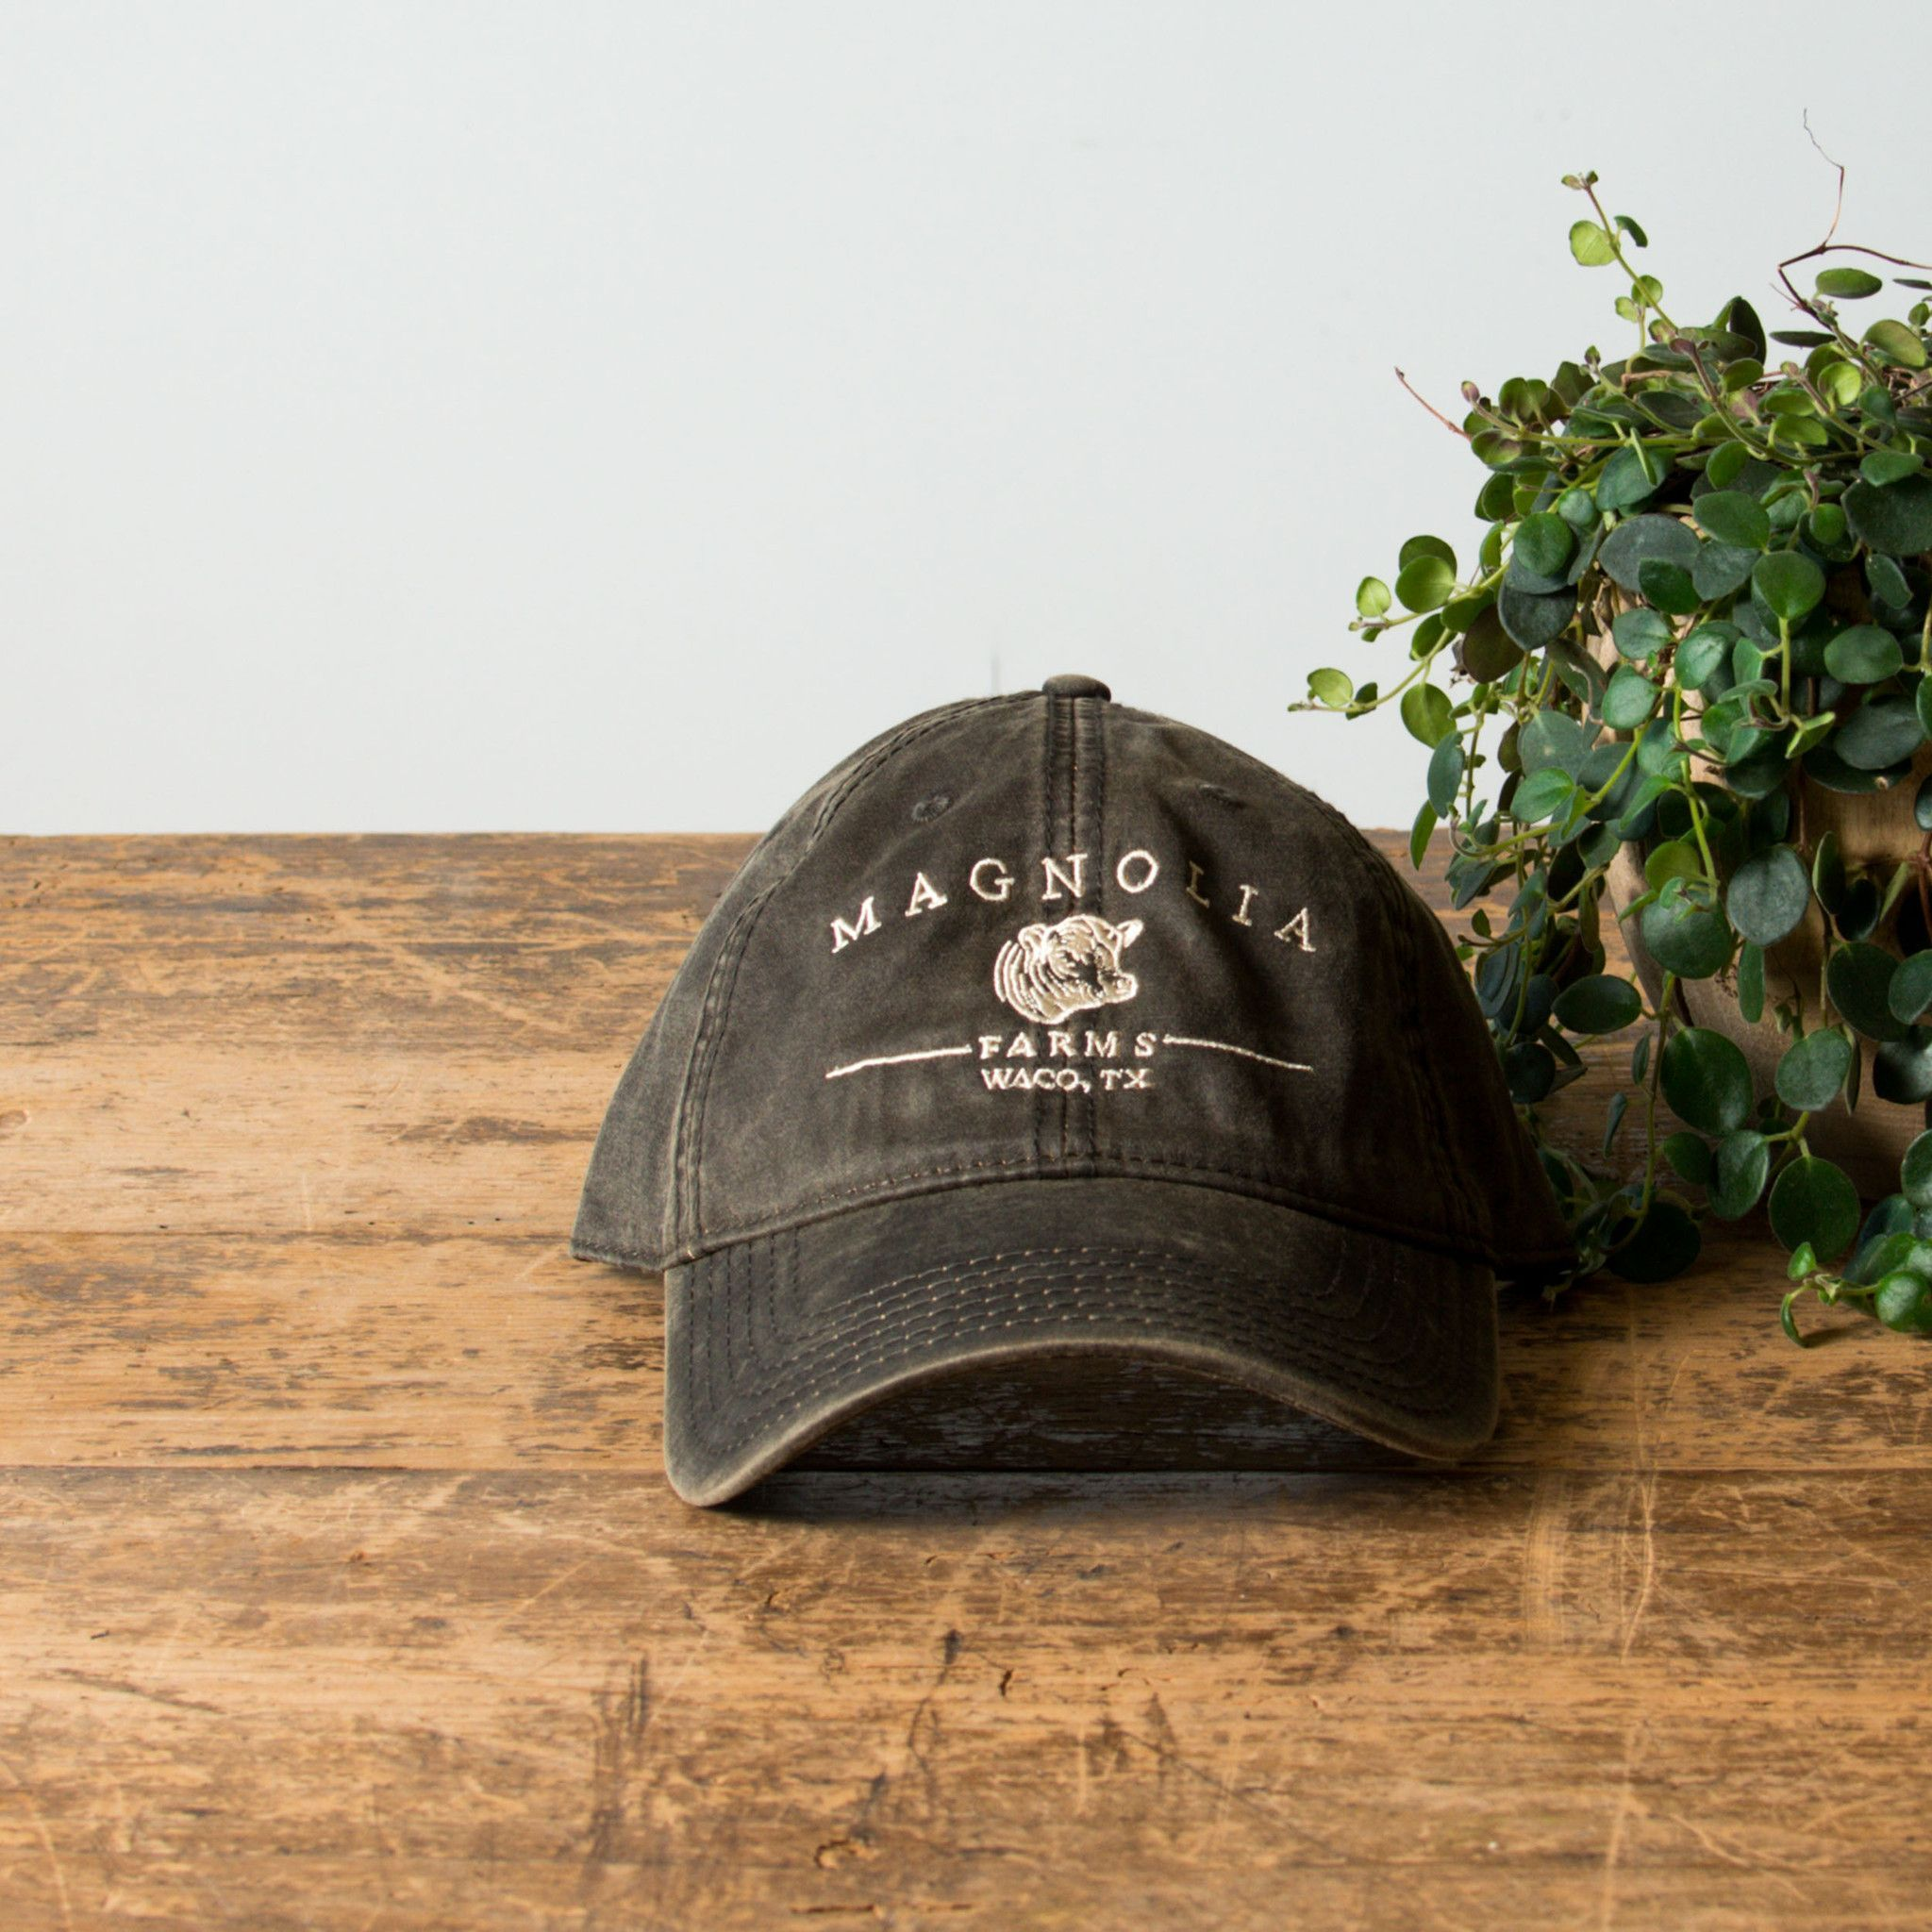 Ideas for Simple Men s Fashion. Magnolia Farms Hat 8a8207b7f